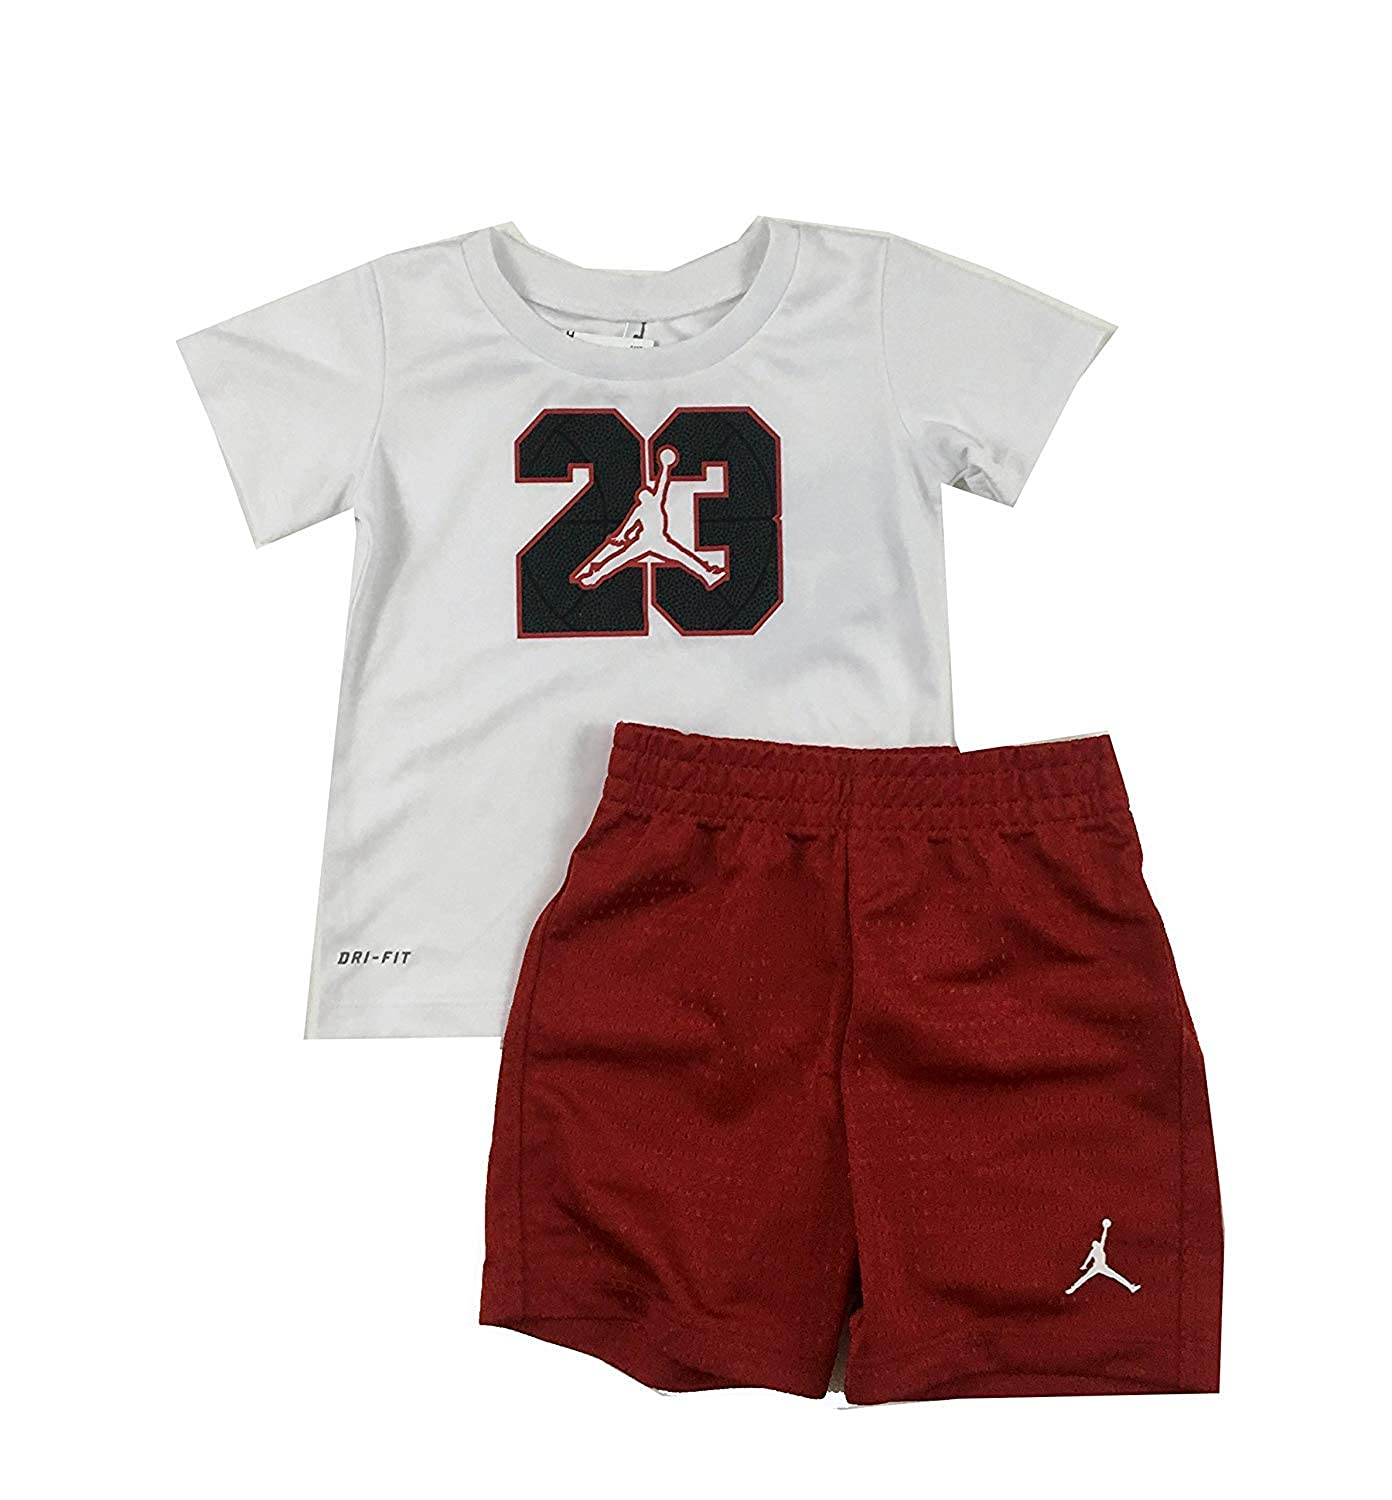 finest selection 8ed9f 5e9c7 Jordan Jumpman Infant/Toddler Boys Two Piece T-Shirt and Short Set Gym Red  Size 12 Months